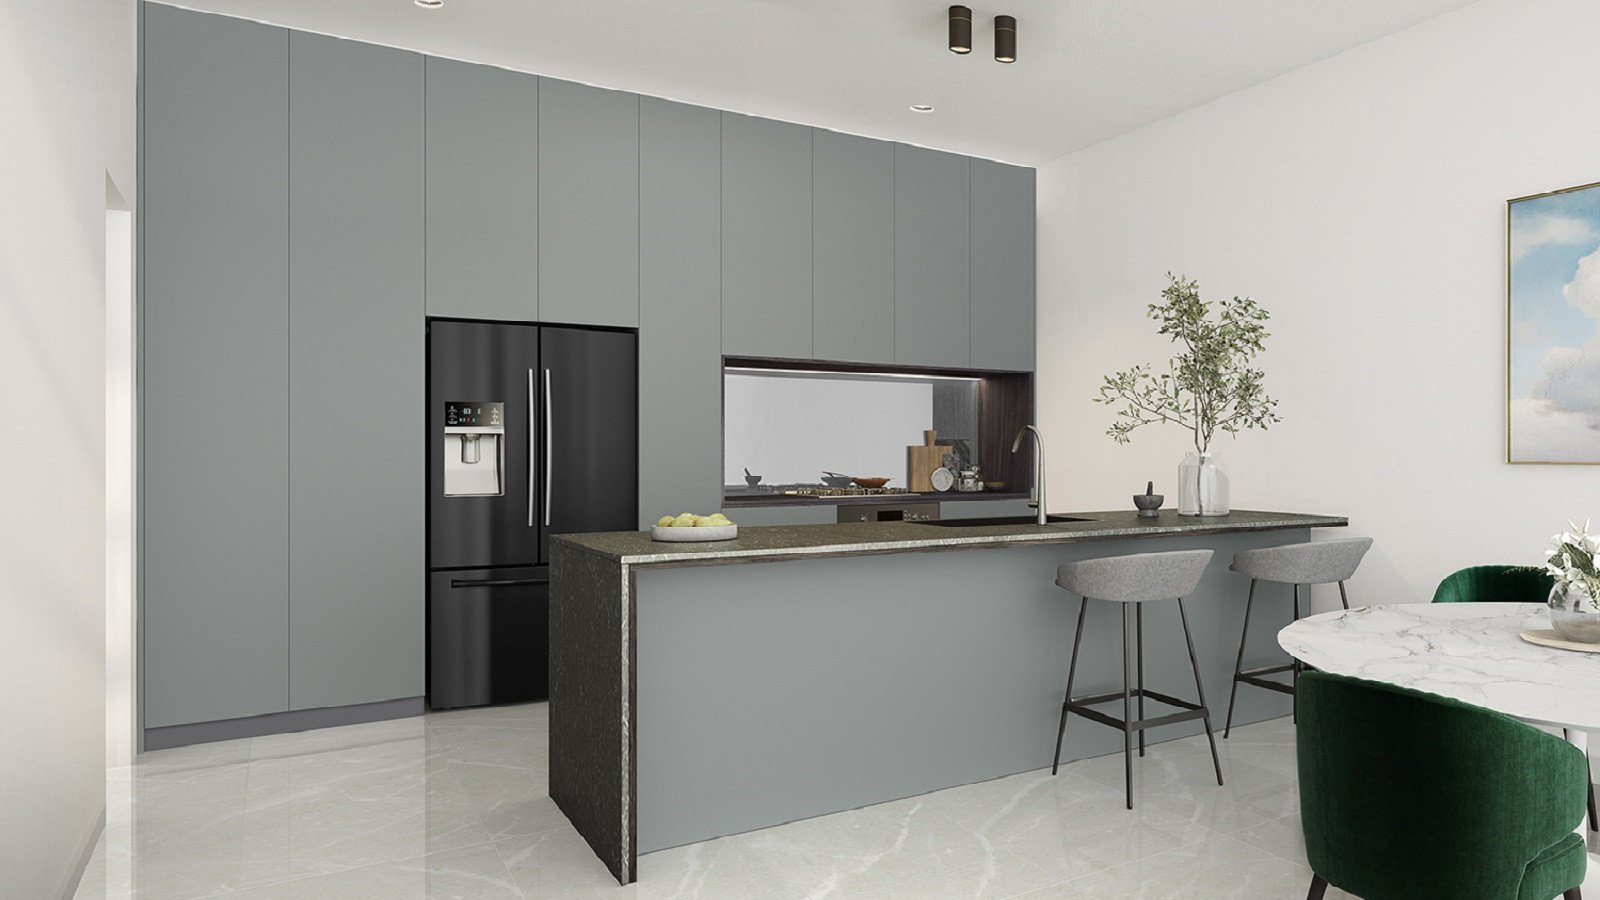 Zetland Apartments-image-6